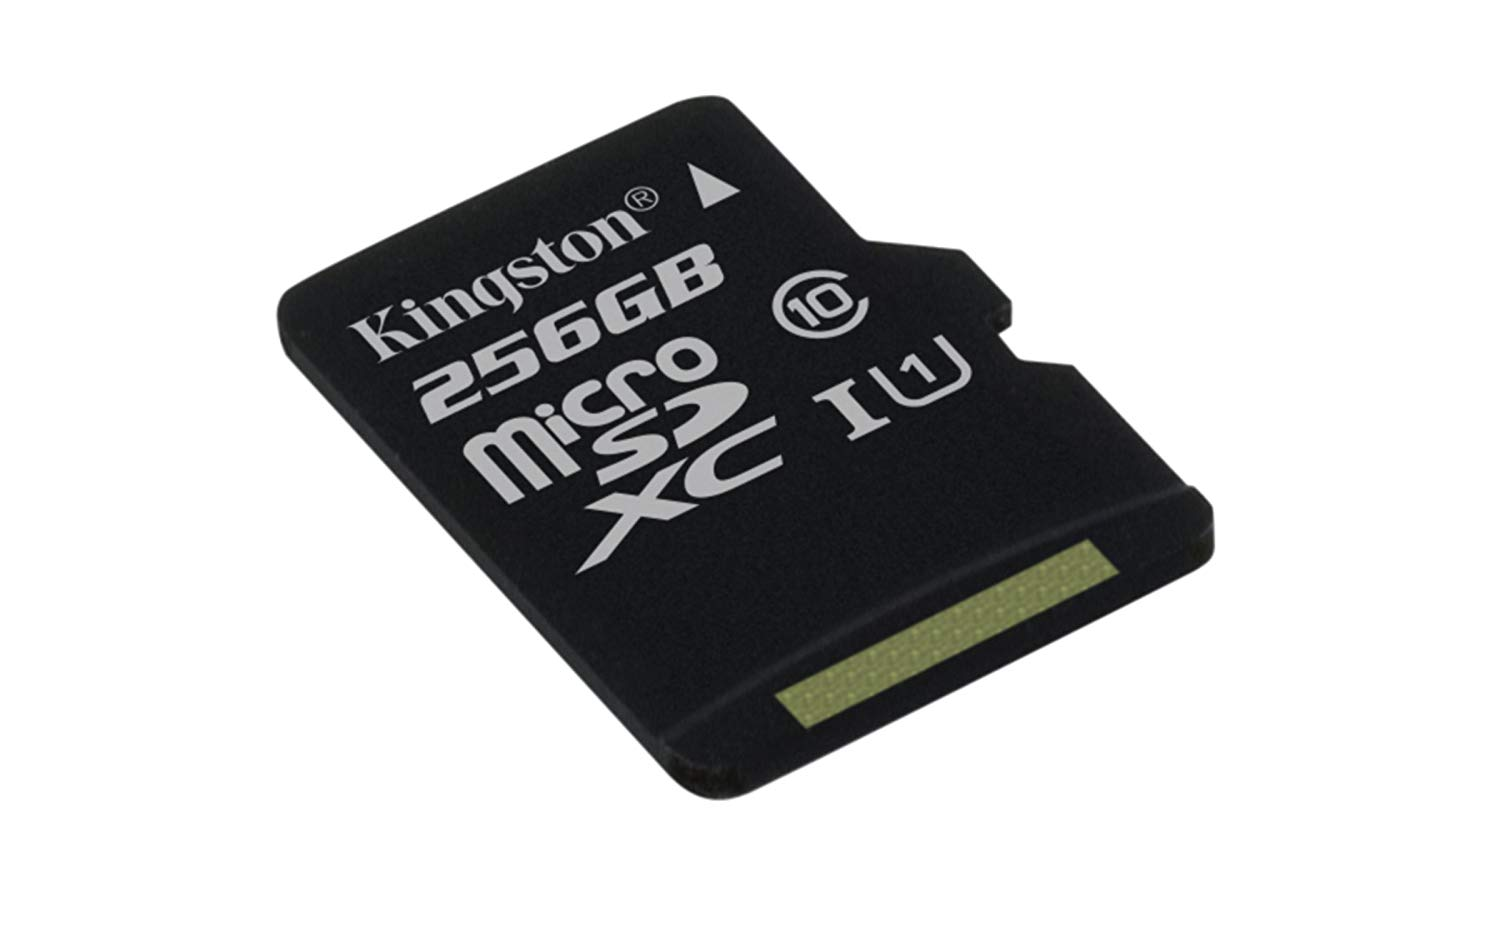 Kingston 256GB CL10 Canvas Select Micro SDXC